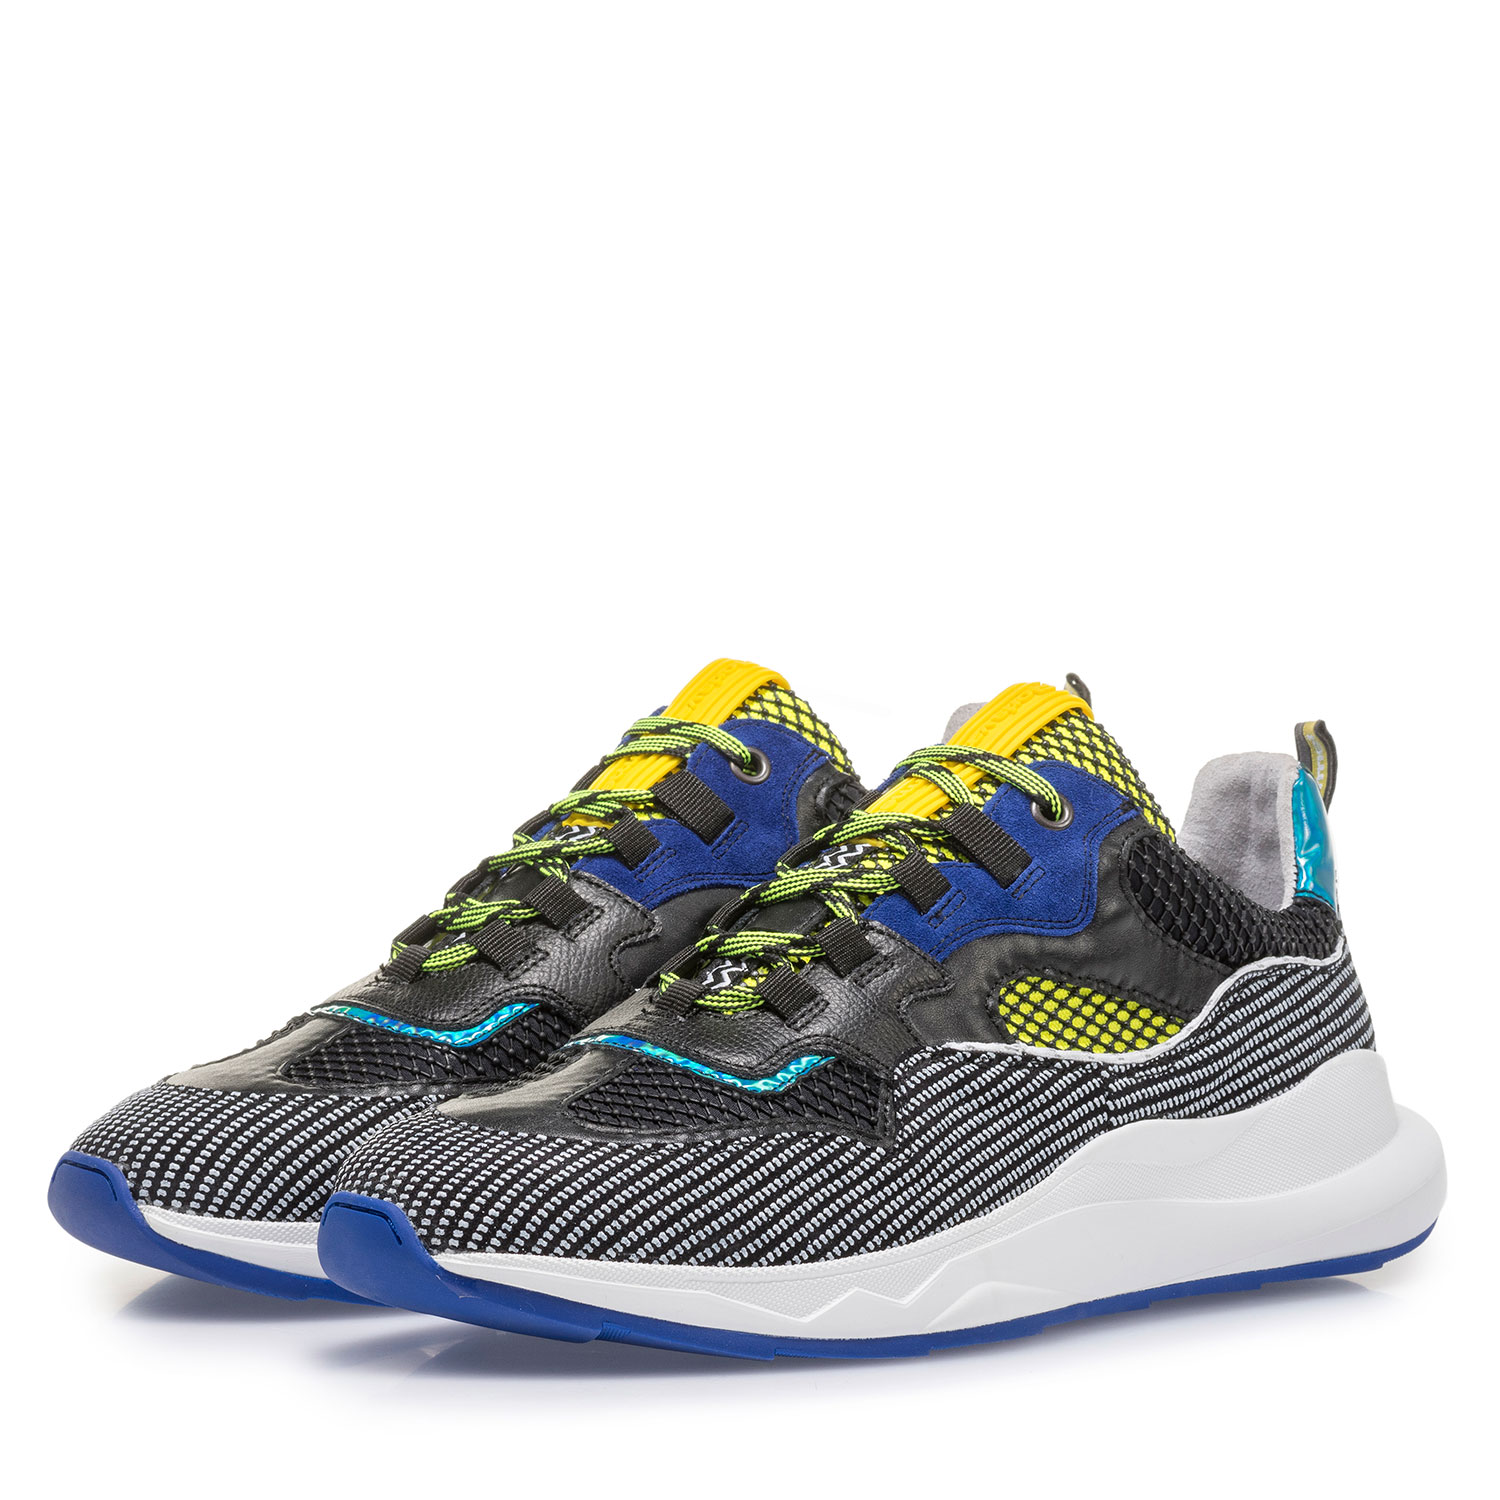 16268/00 - Premium blue and yellow suede leather sneaker